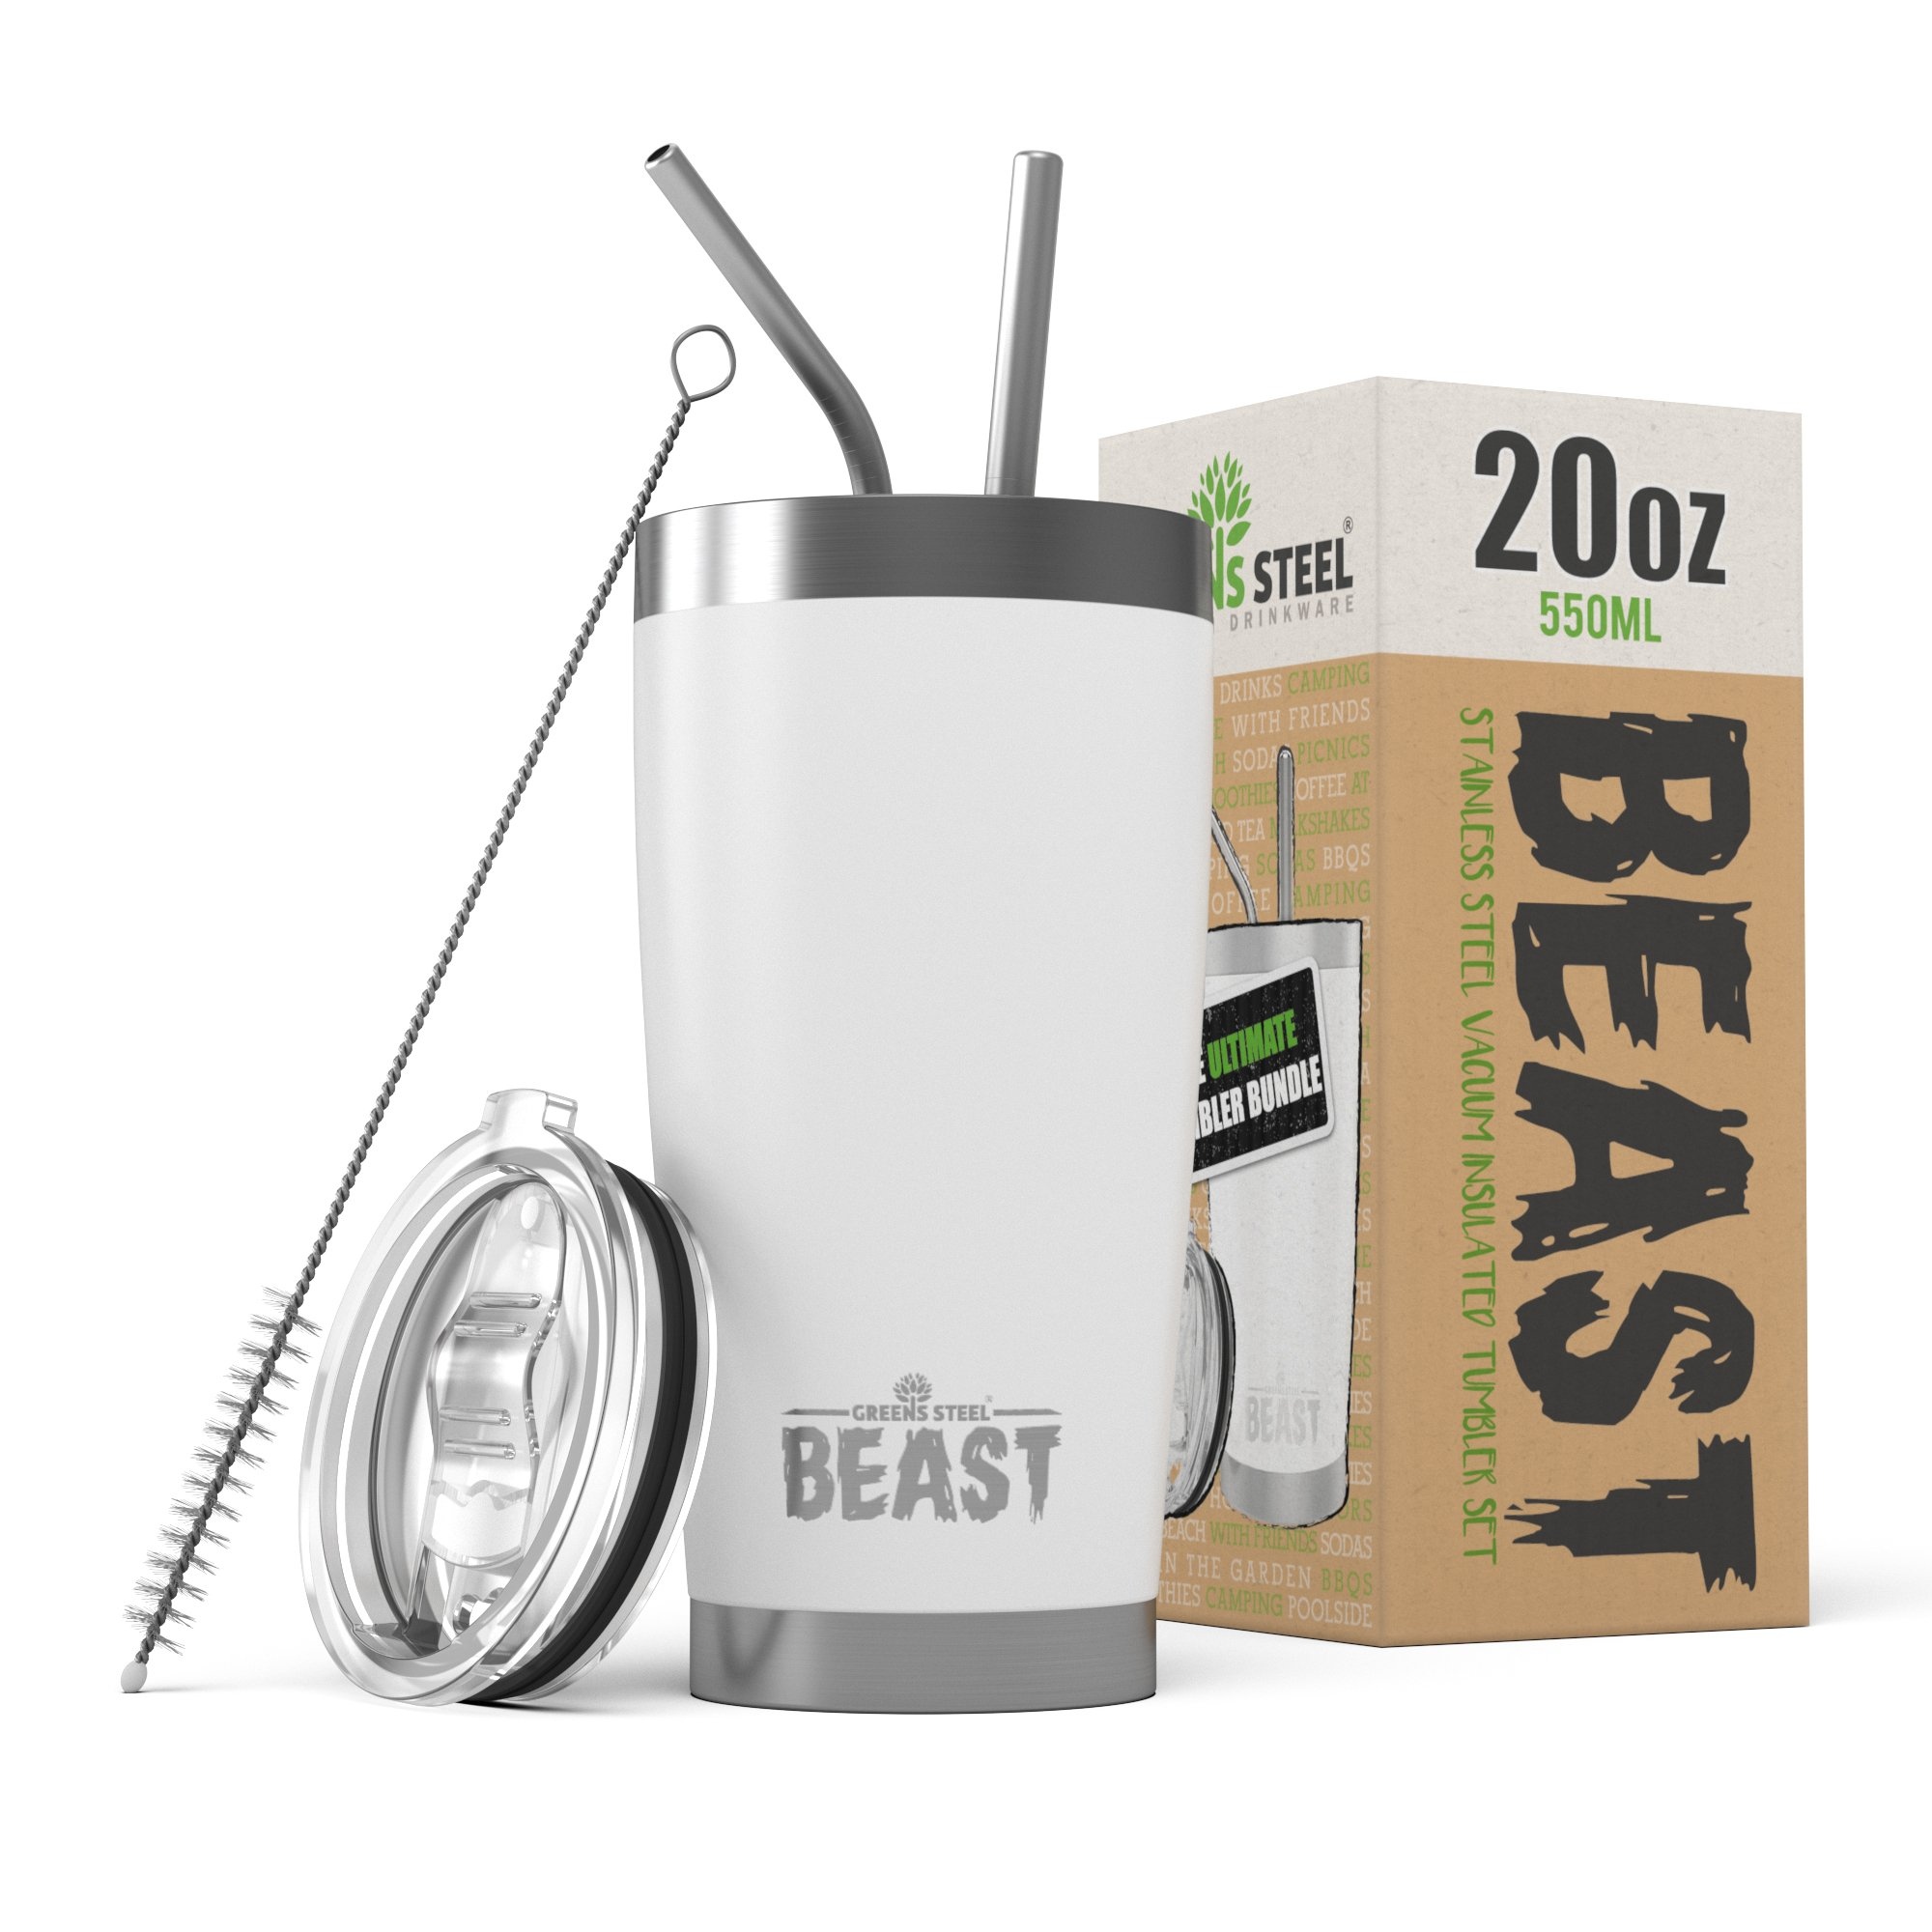 BEAST 20oz Insulated Reusable Tumbler - BPA Free Stainless Steel Coffee Cup with Lid, 2 Straws, Brush & Gift Box (